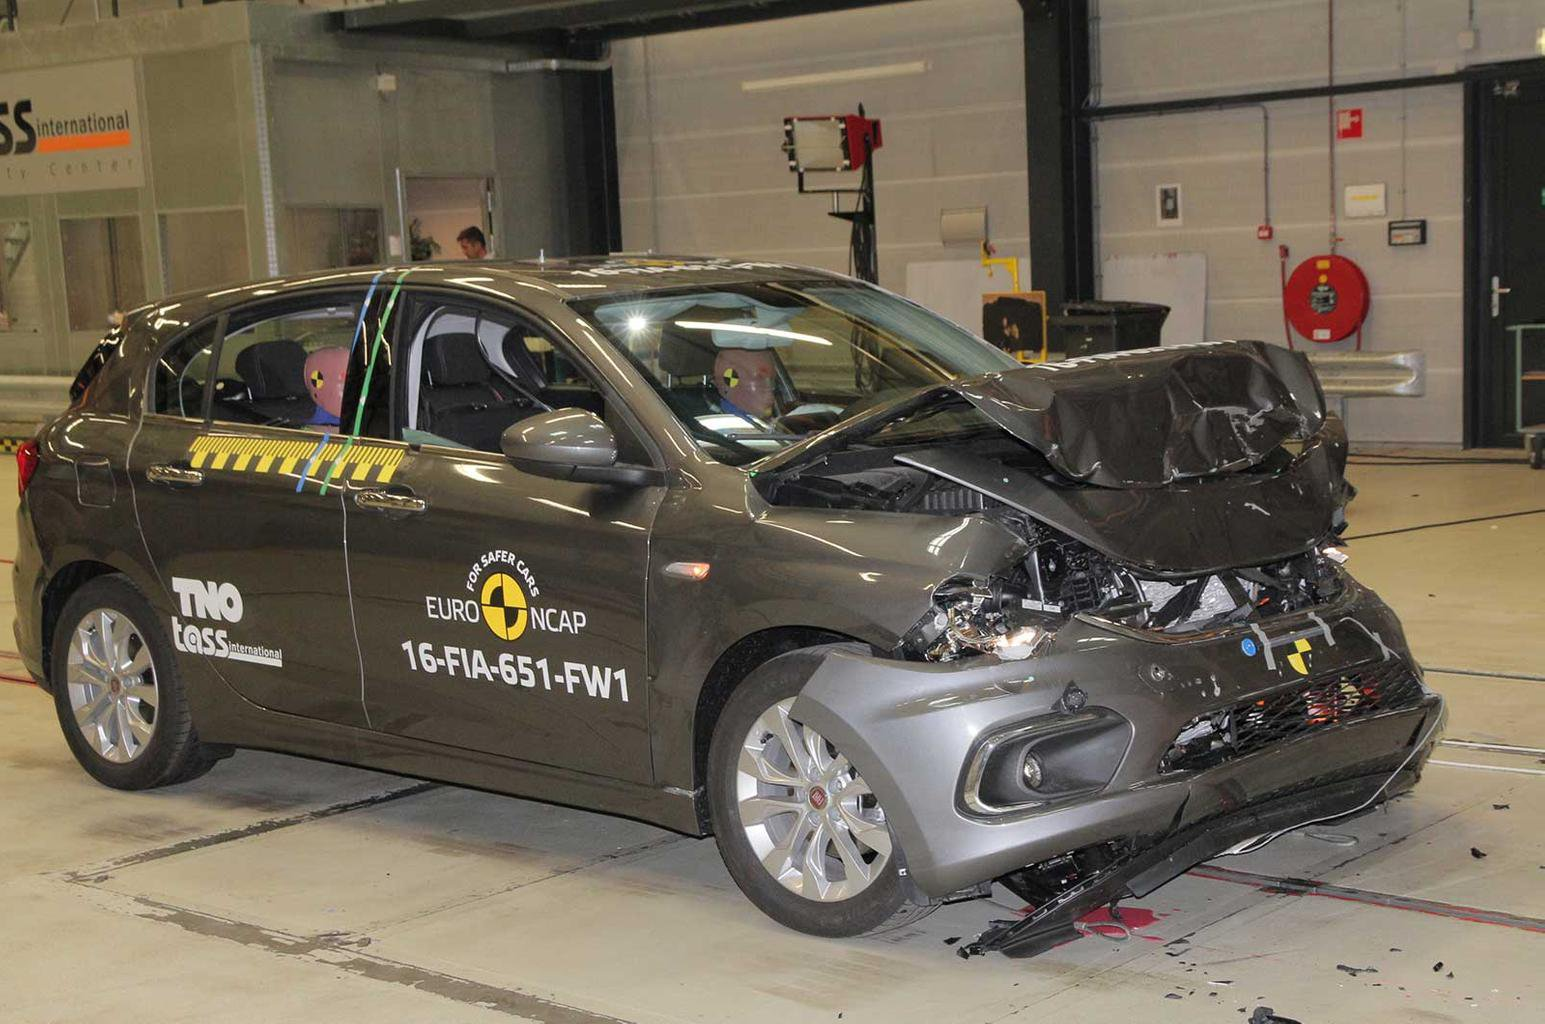 Fiat Tipo gets 3-star safety rating from Euro NCAP